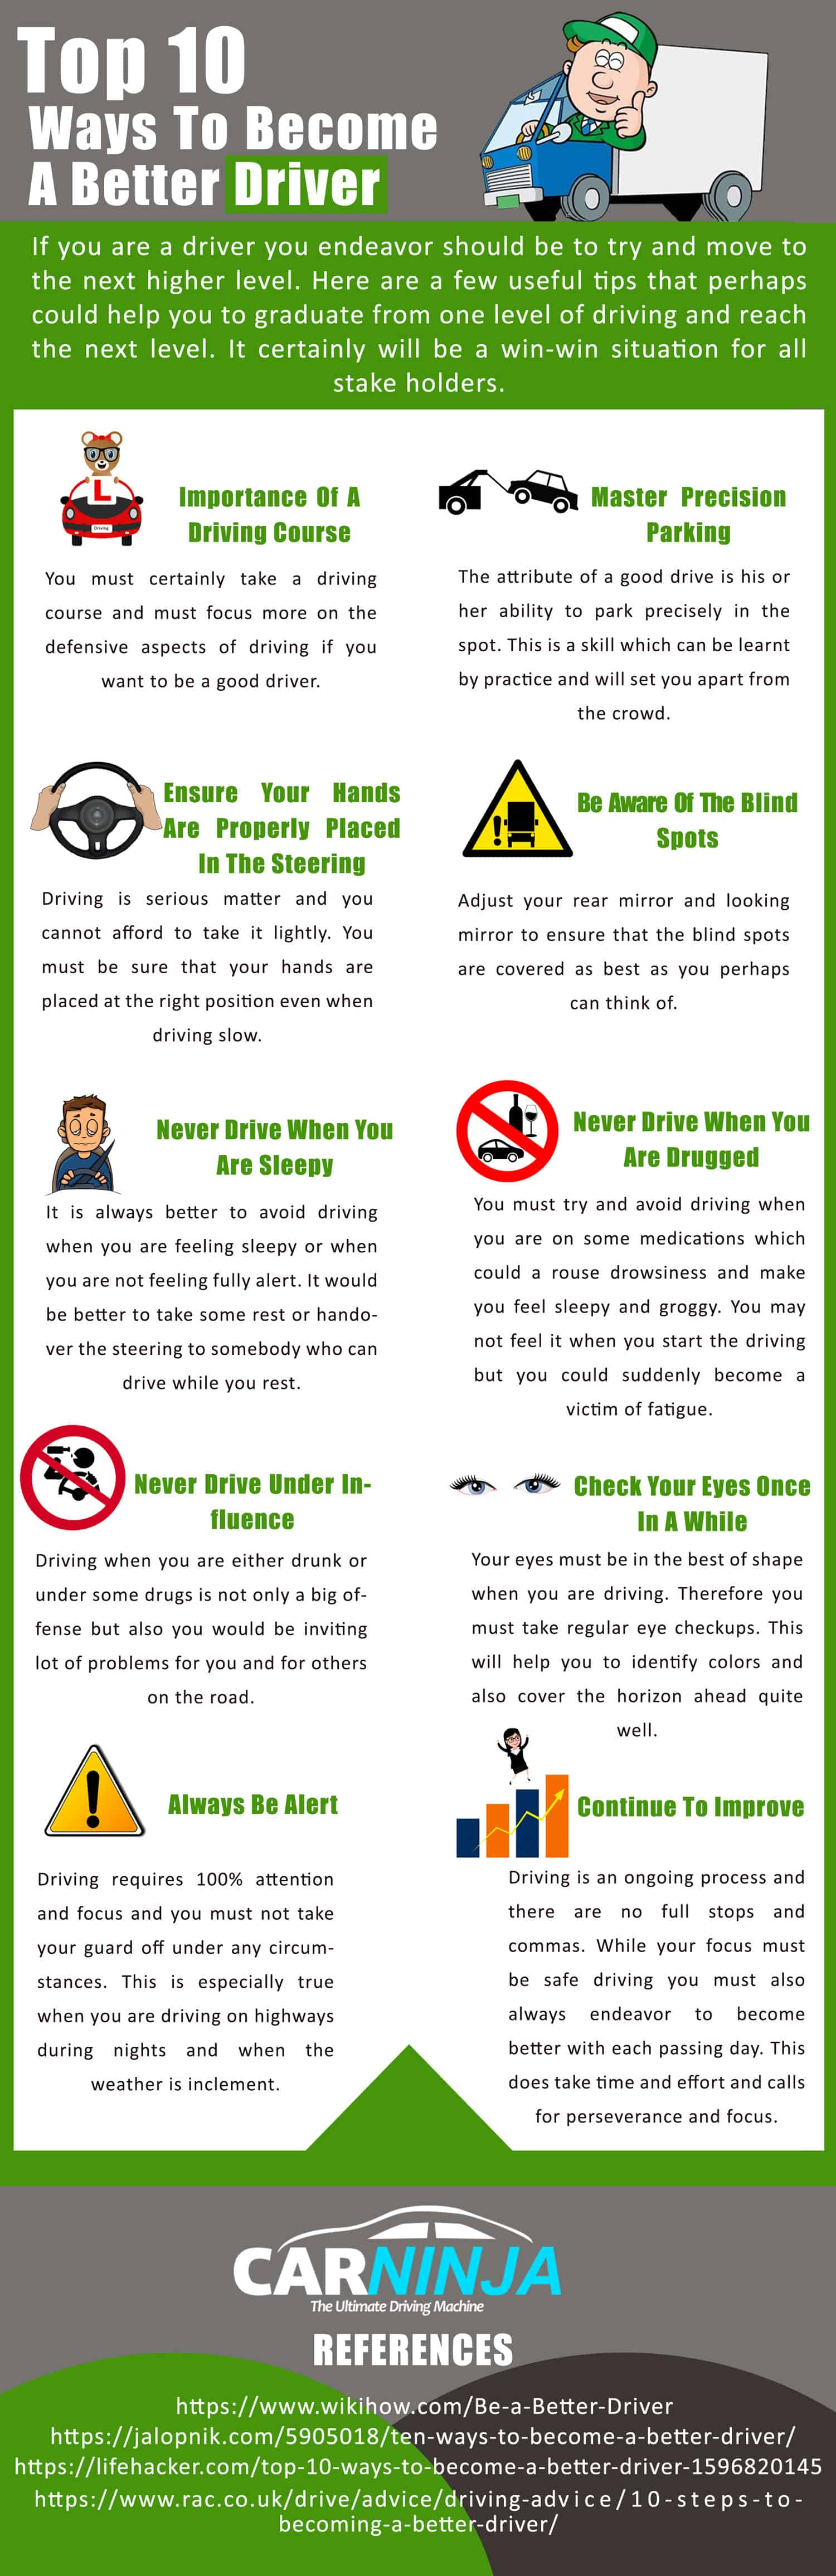 Top 10 Ways To Become A Better Driver